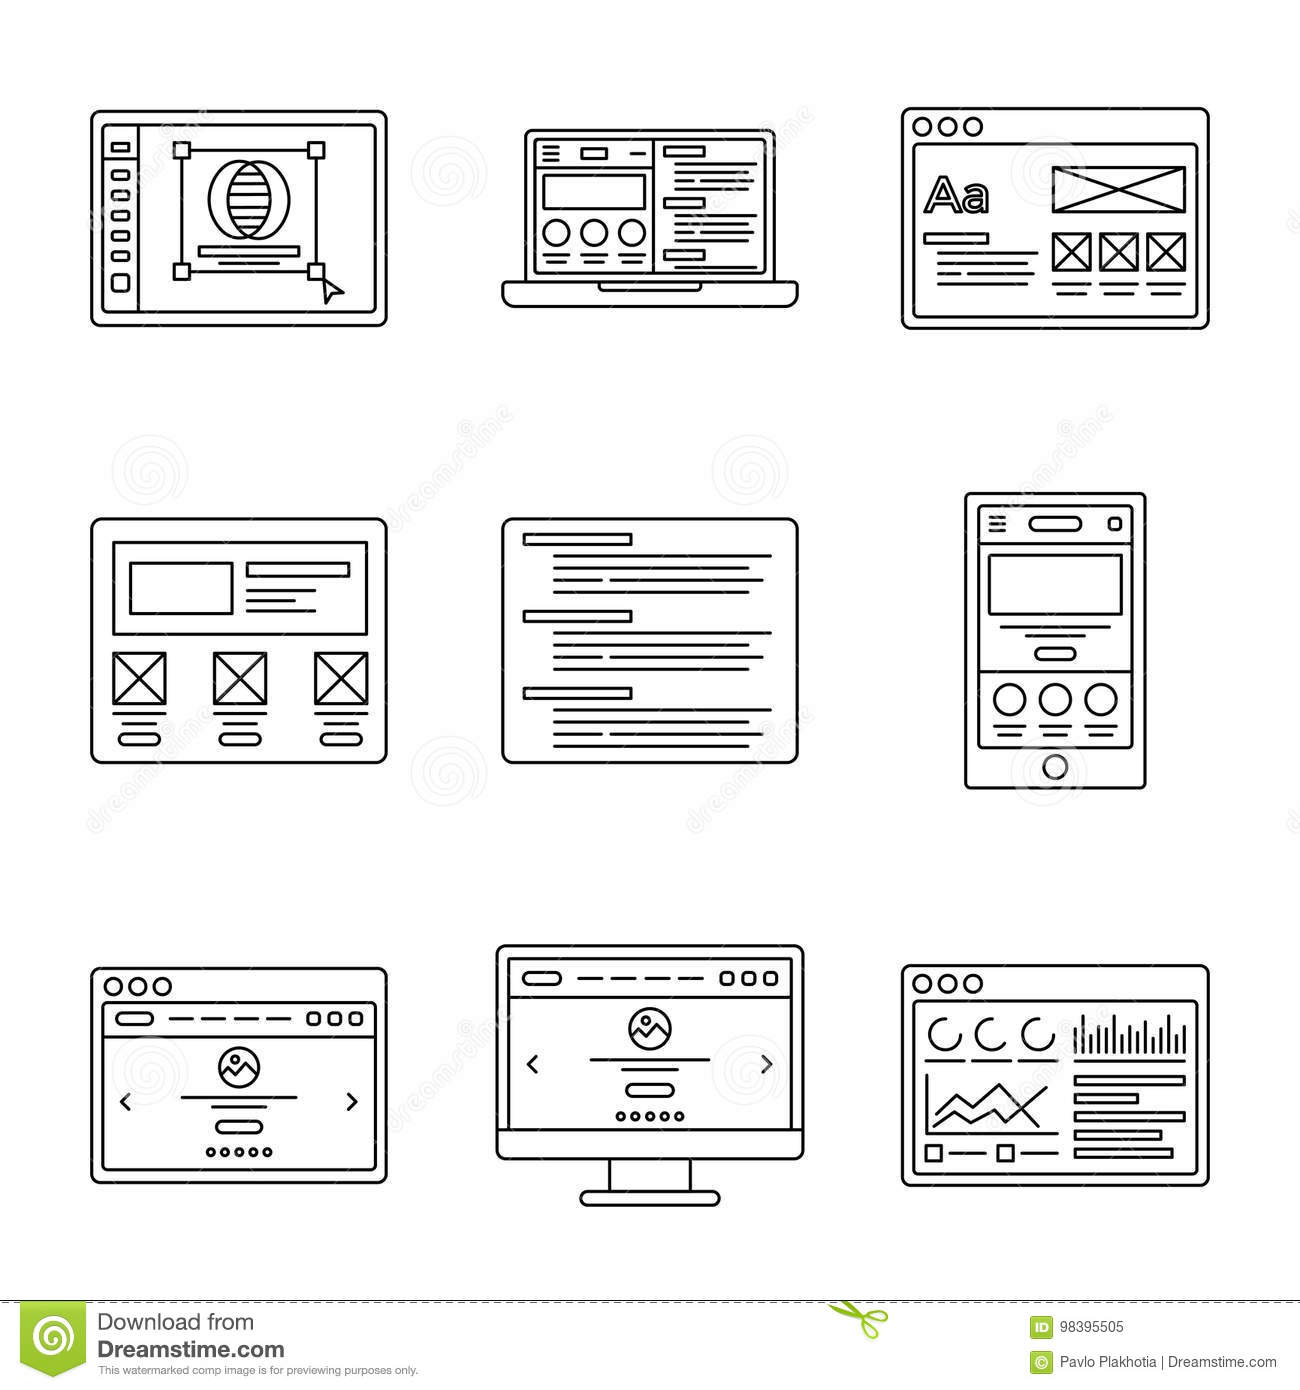 Web development and wireframes line icons set. Collection of outline illustrations for website or logo design template